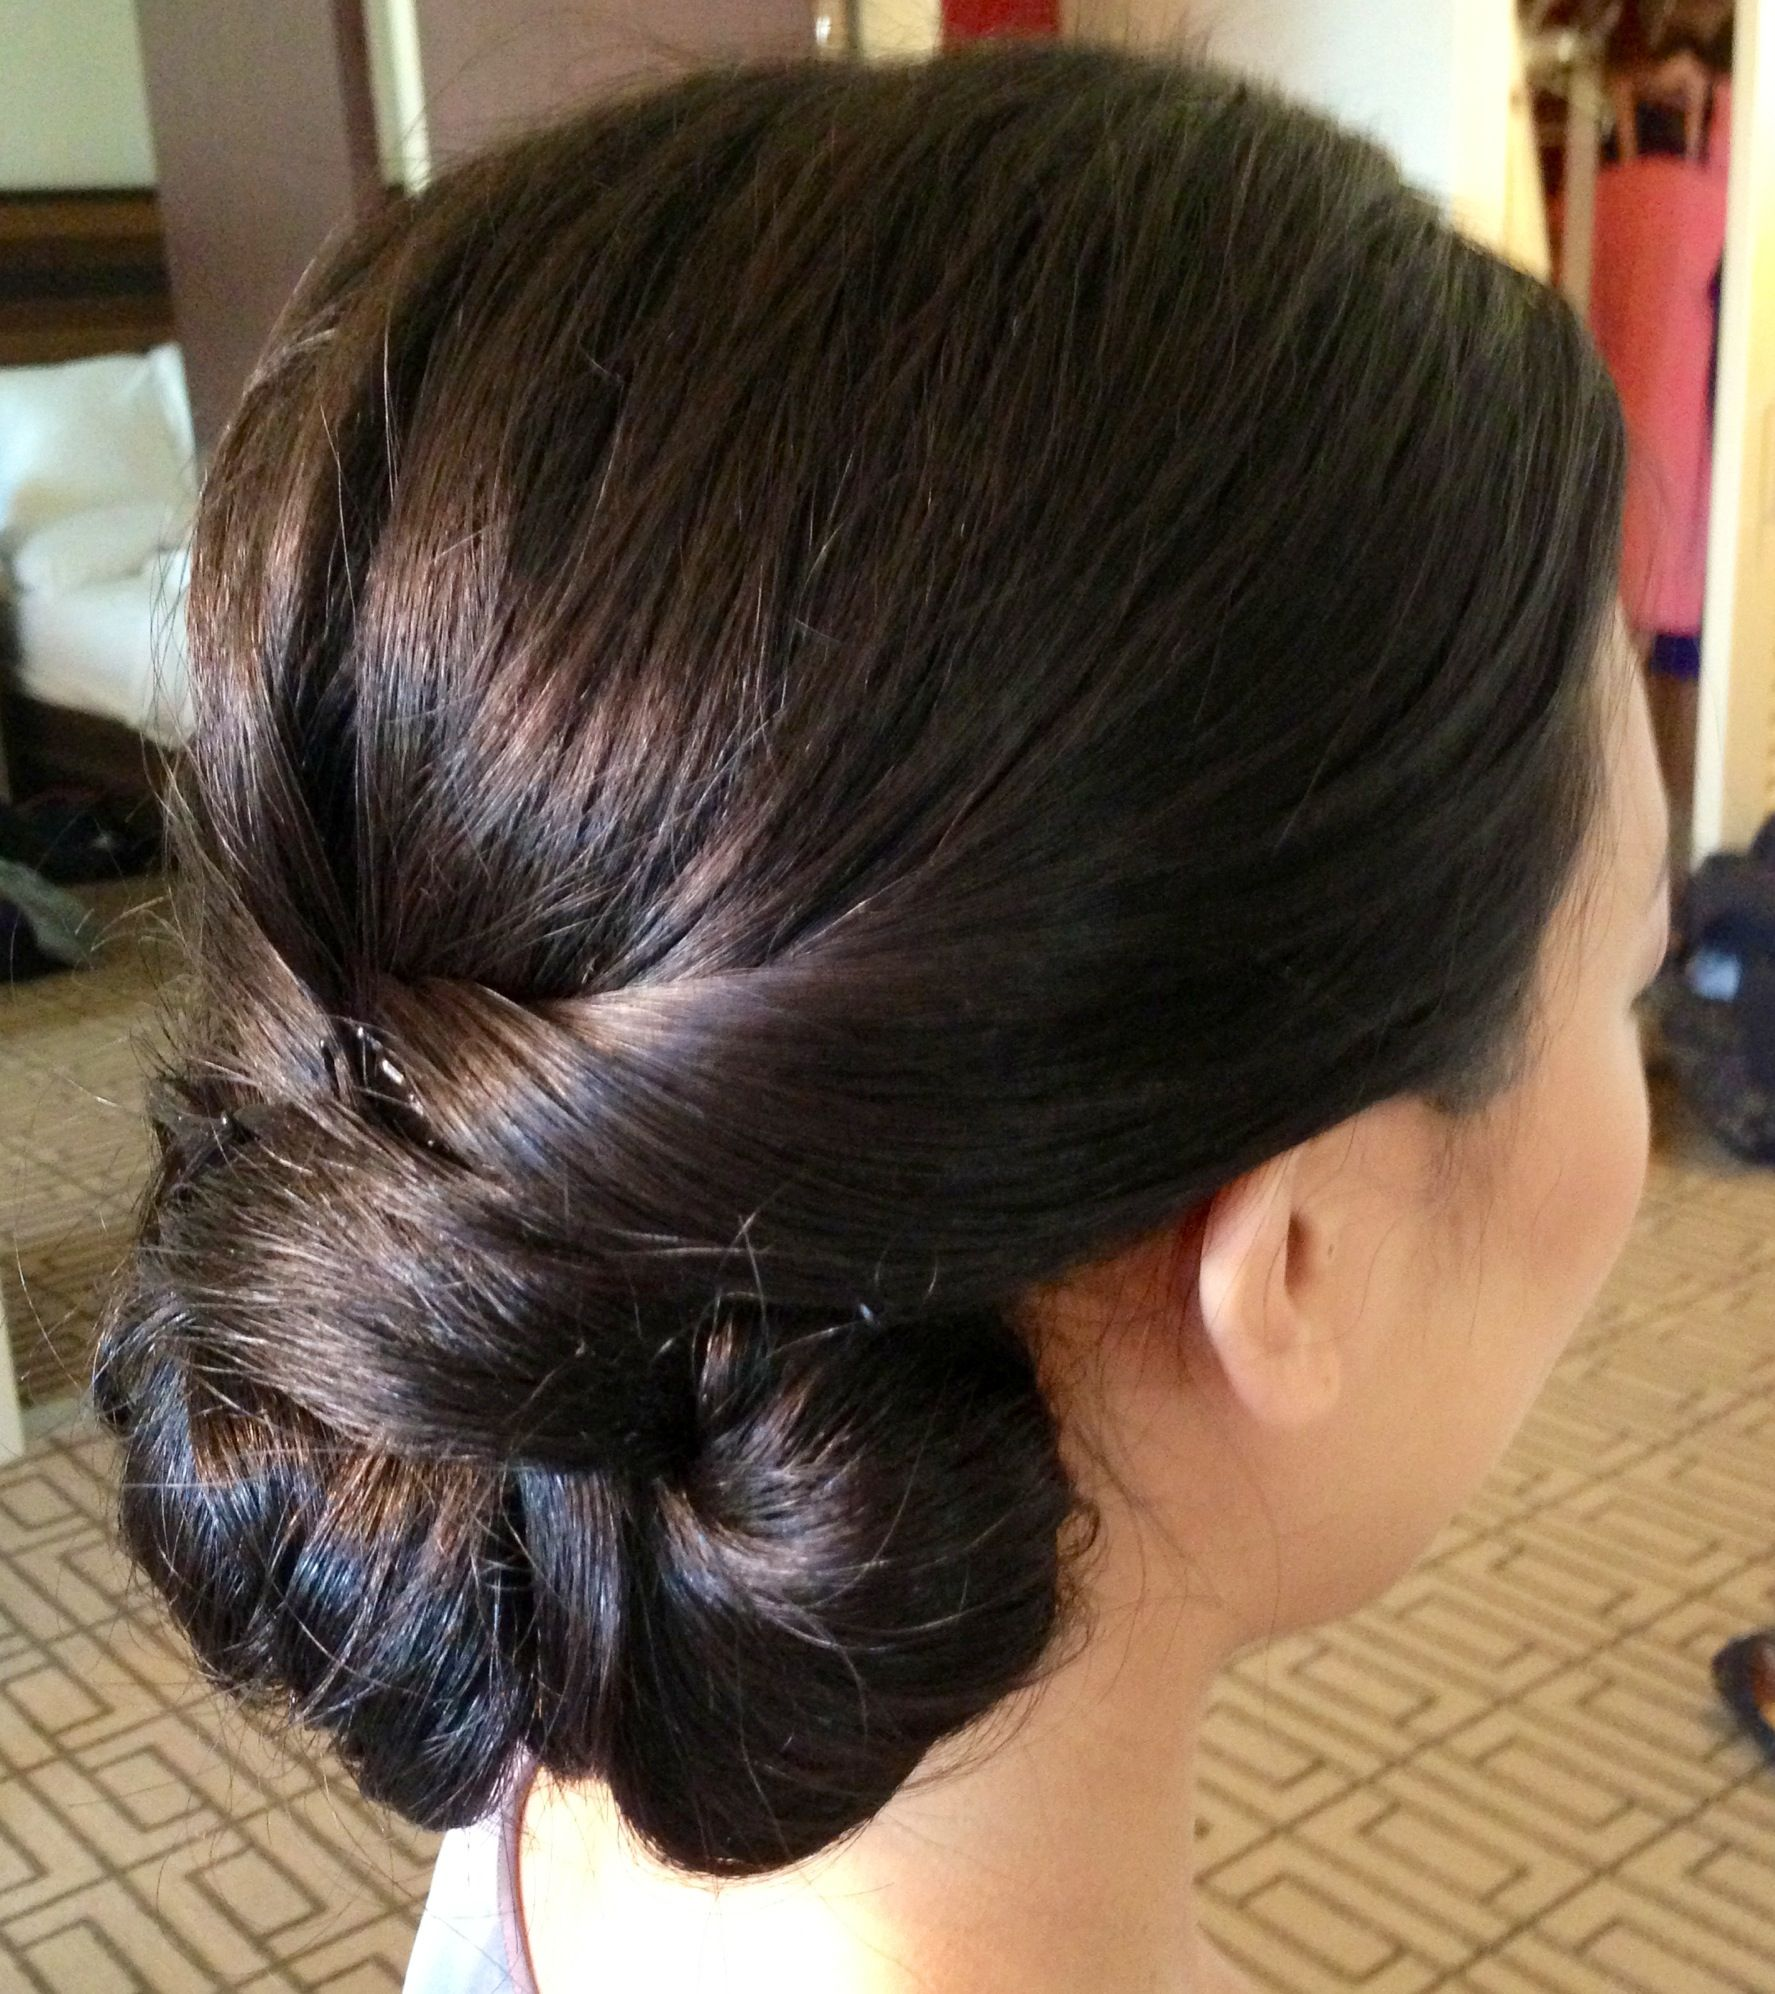 Wedding Hairstyle Asian: Wedding Updo, Wedding Hair, Updo, Classic Updo, Chignon